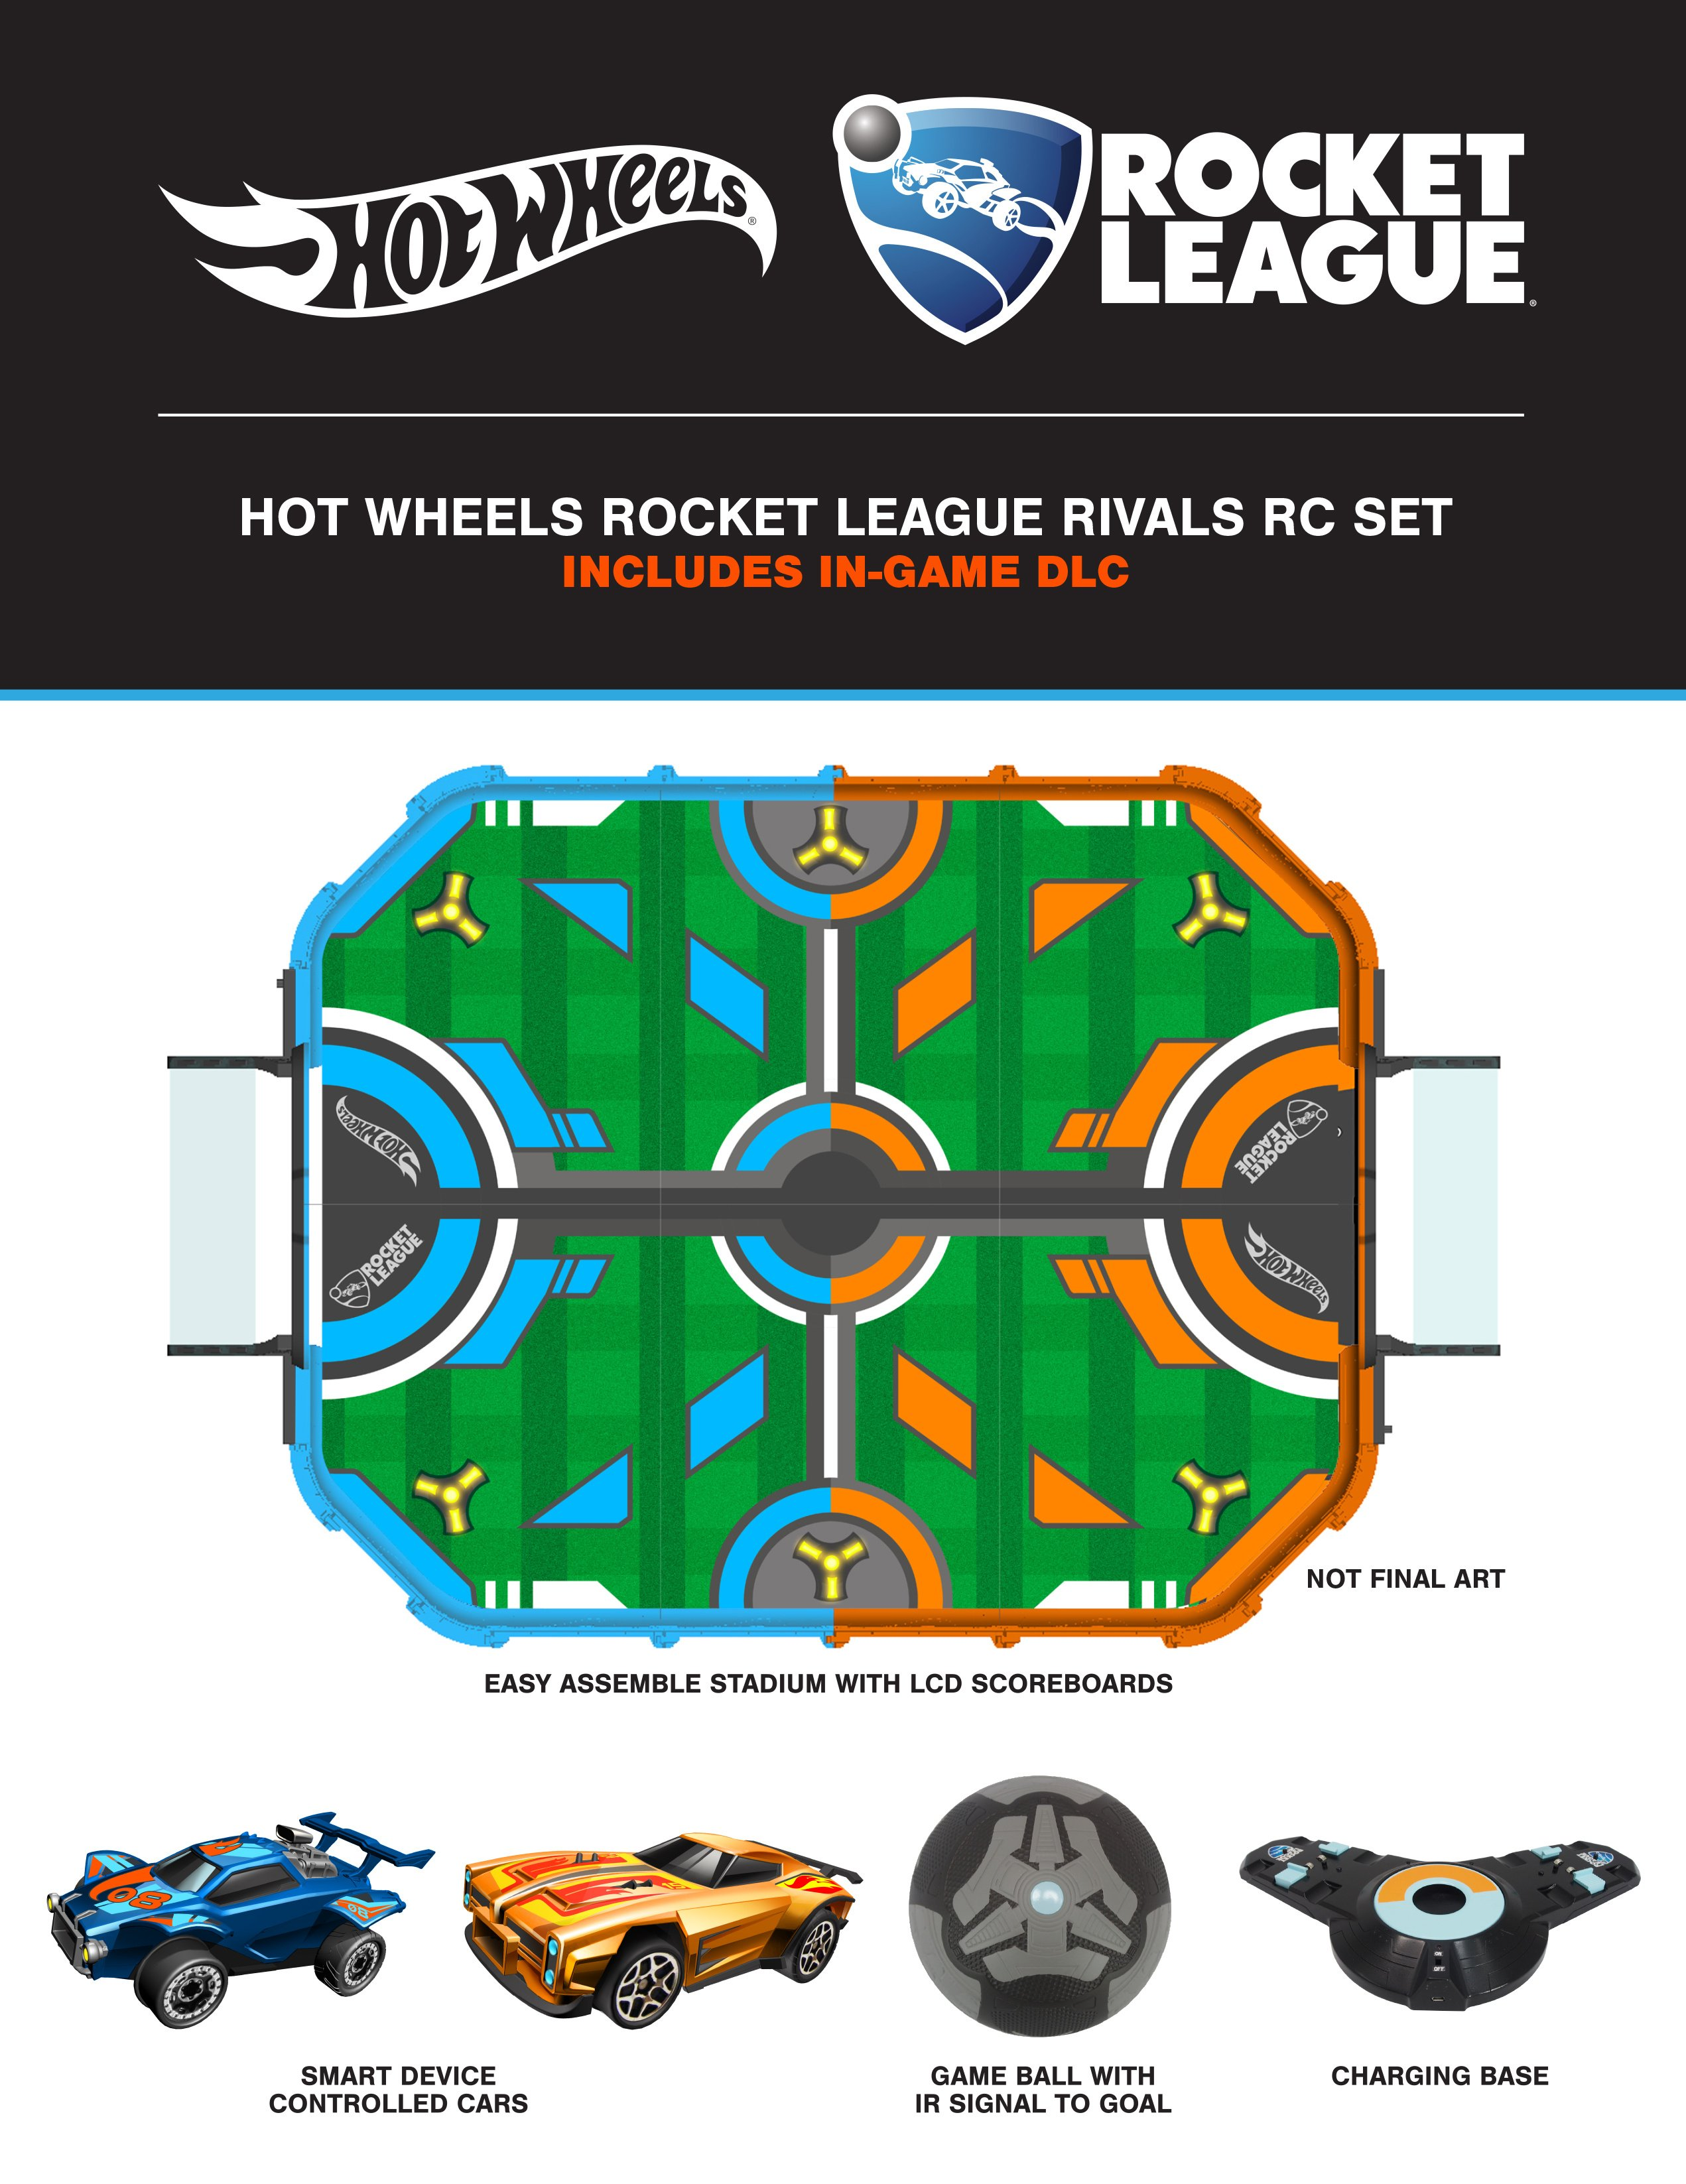 Rocket League is Getting Some Cool Merchandise